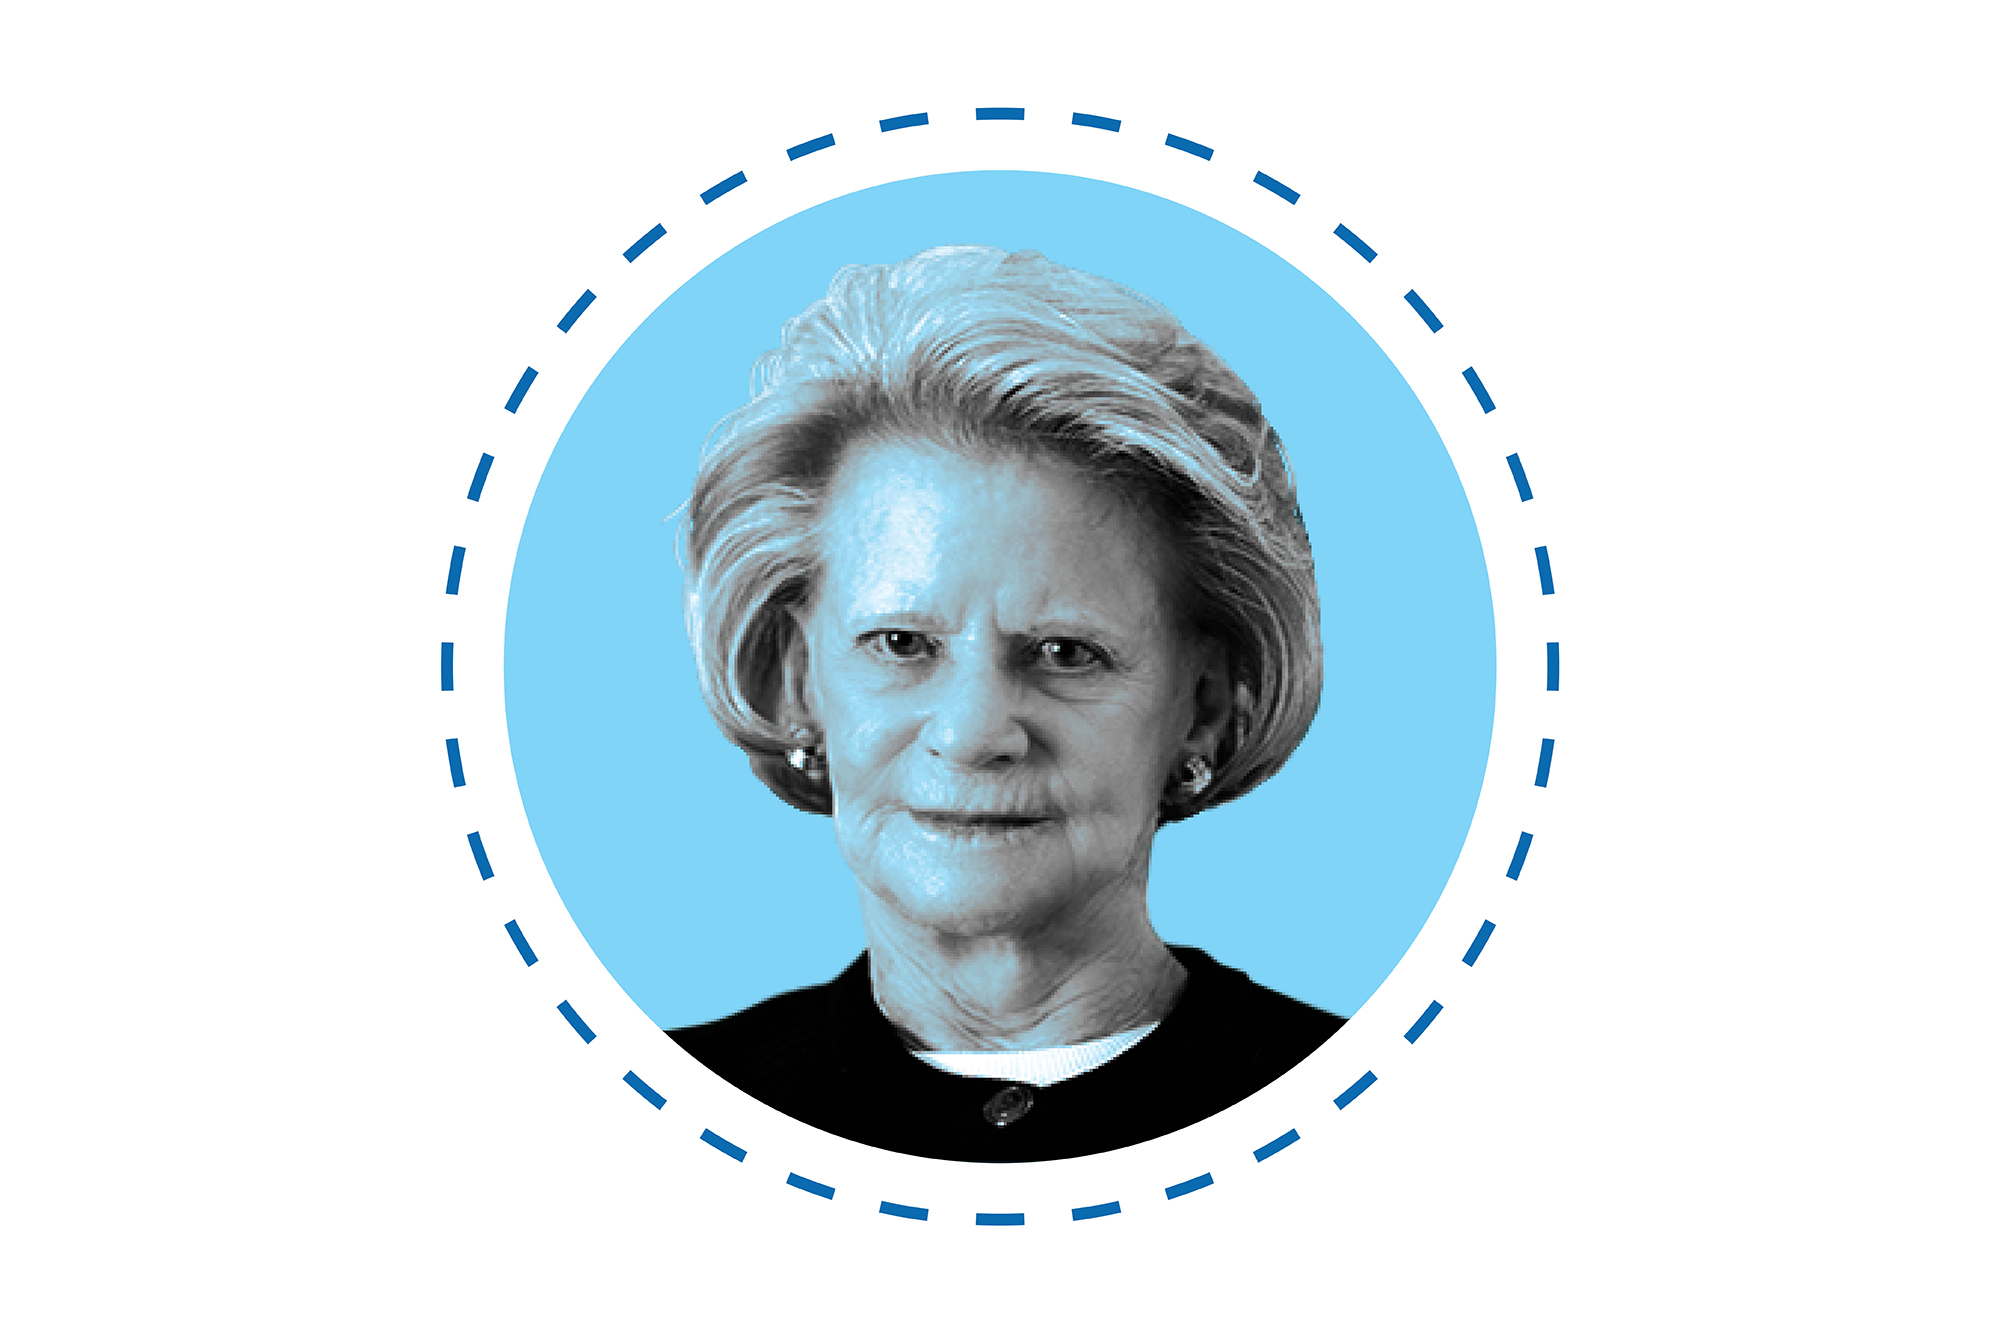 Detroit Lions Owner: Martha Firestone Ford net worth, political donations